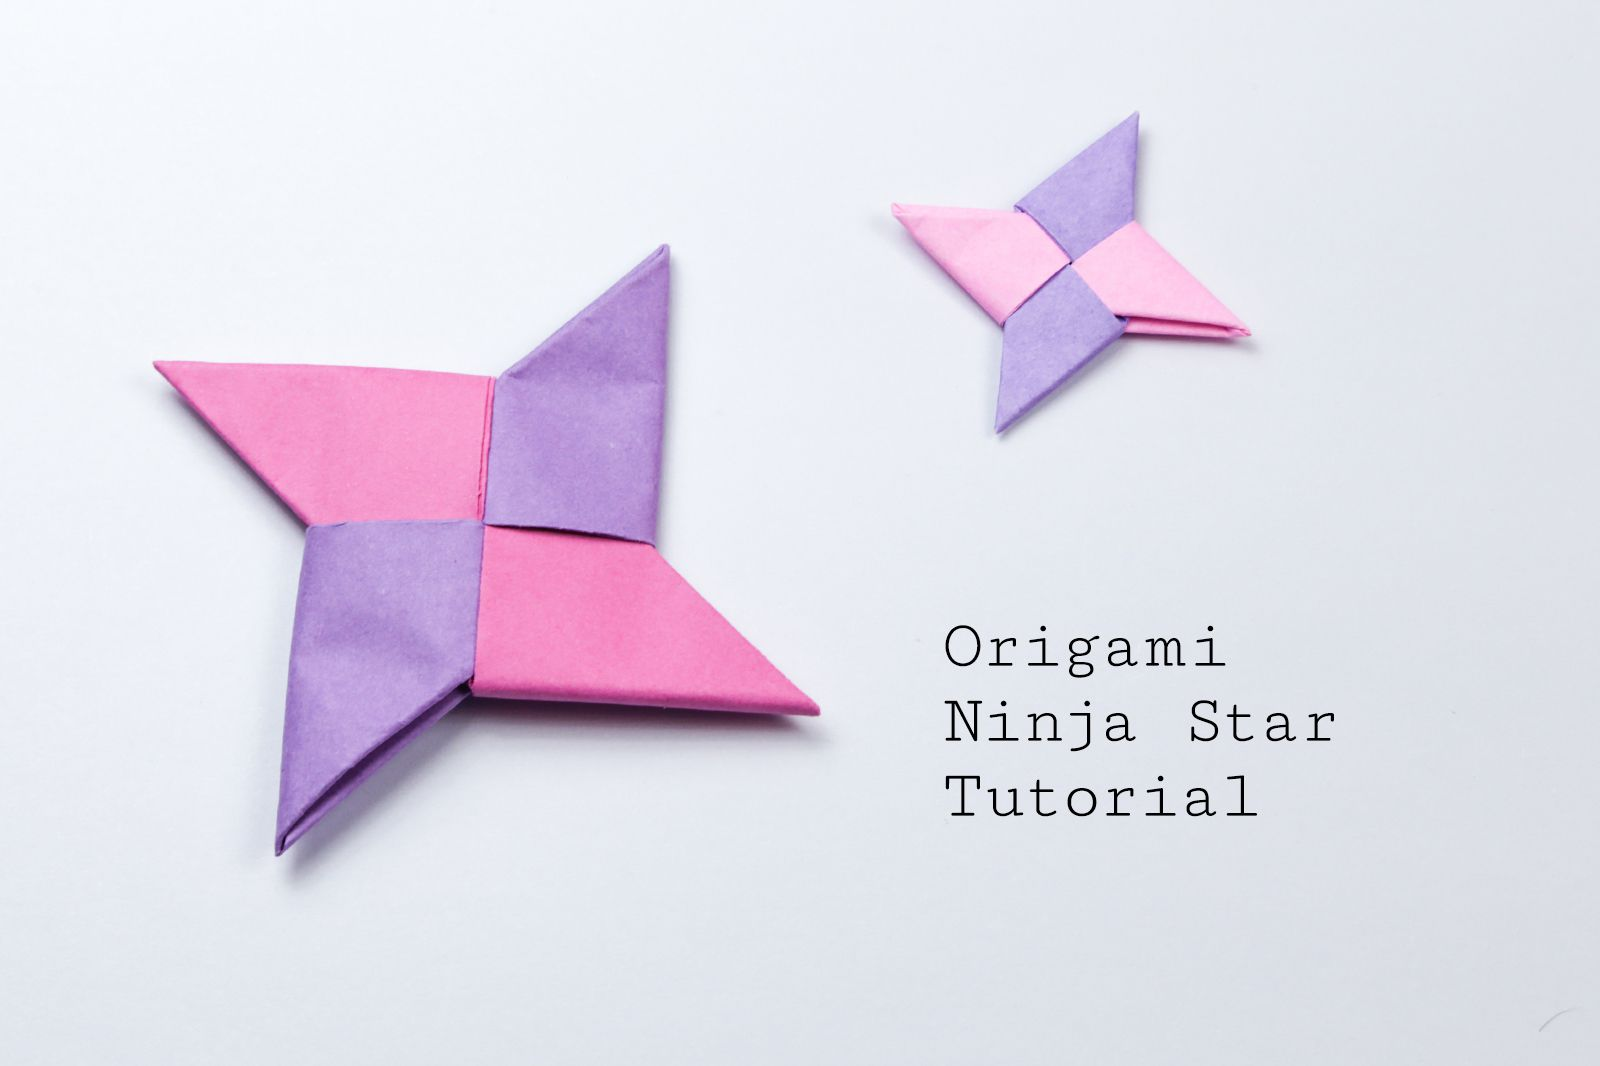 Origami beginner projects easy origami ninja star tutorial jeuxipadfo Choice Image